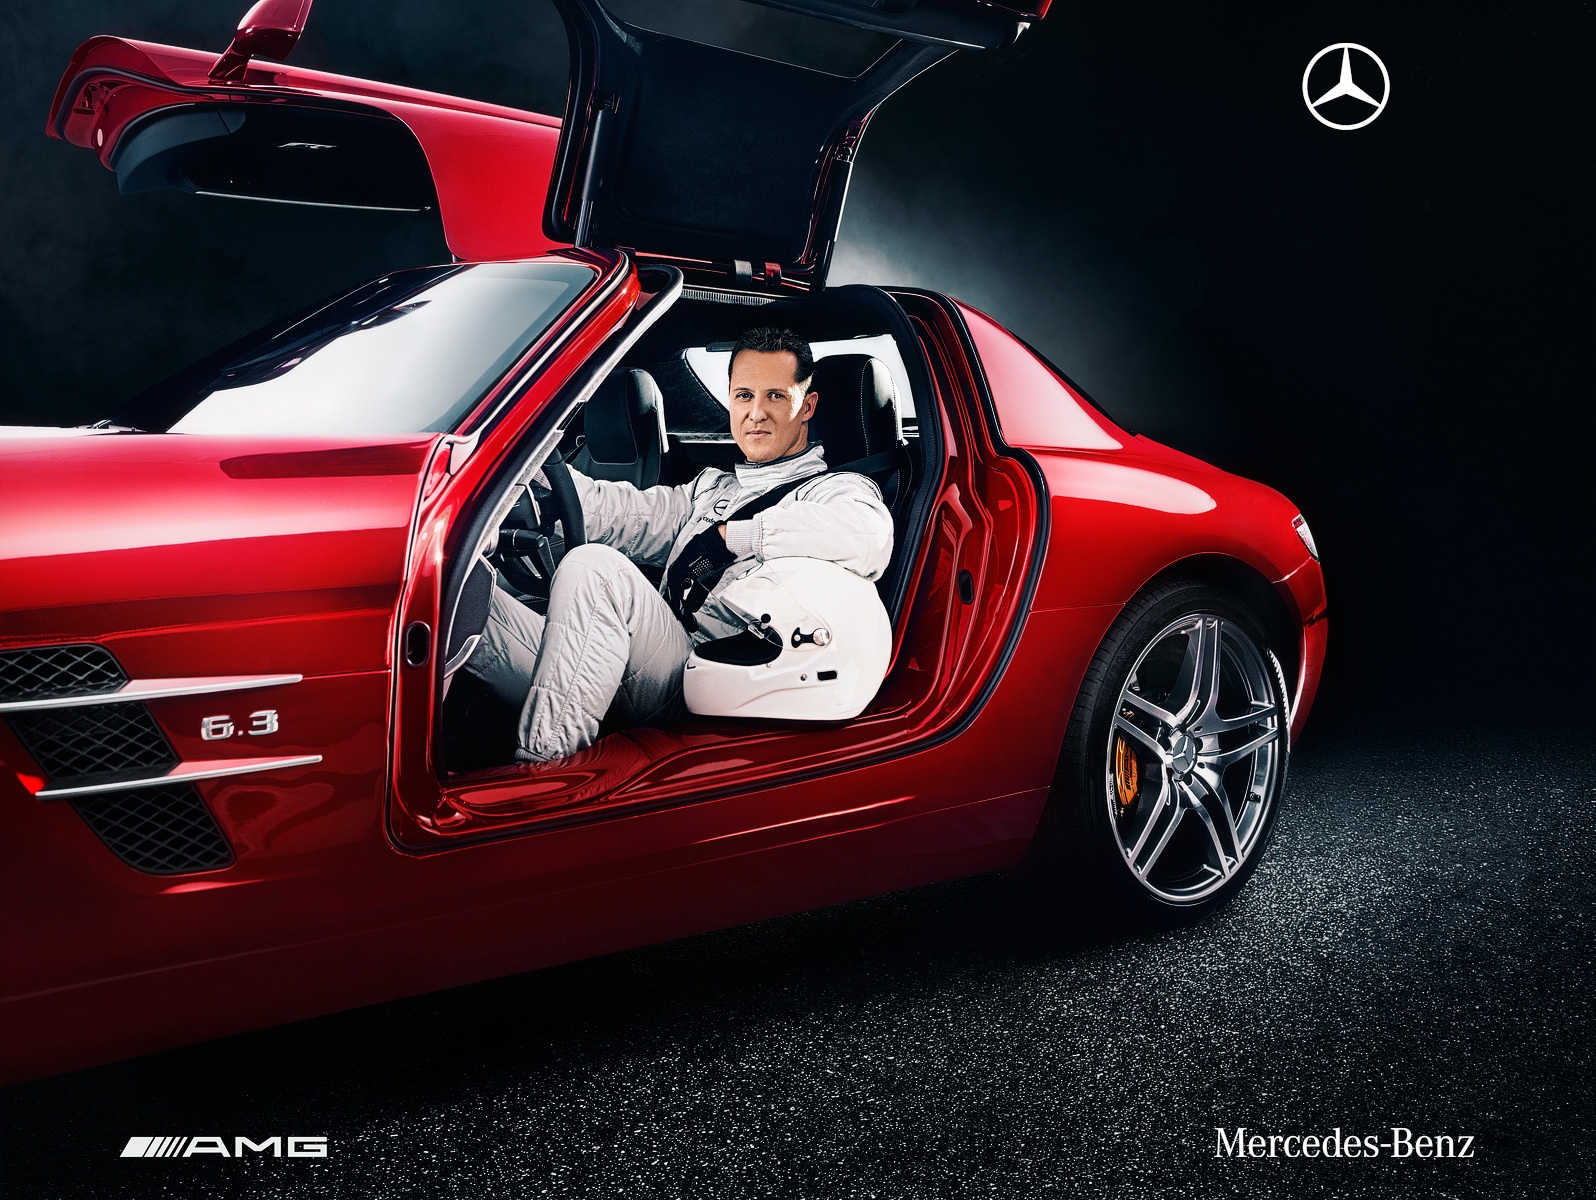 michael schumacher to help develop mercedes benz road cars